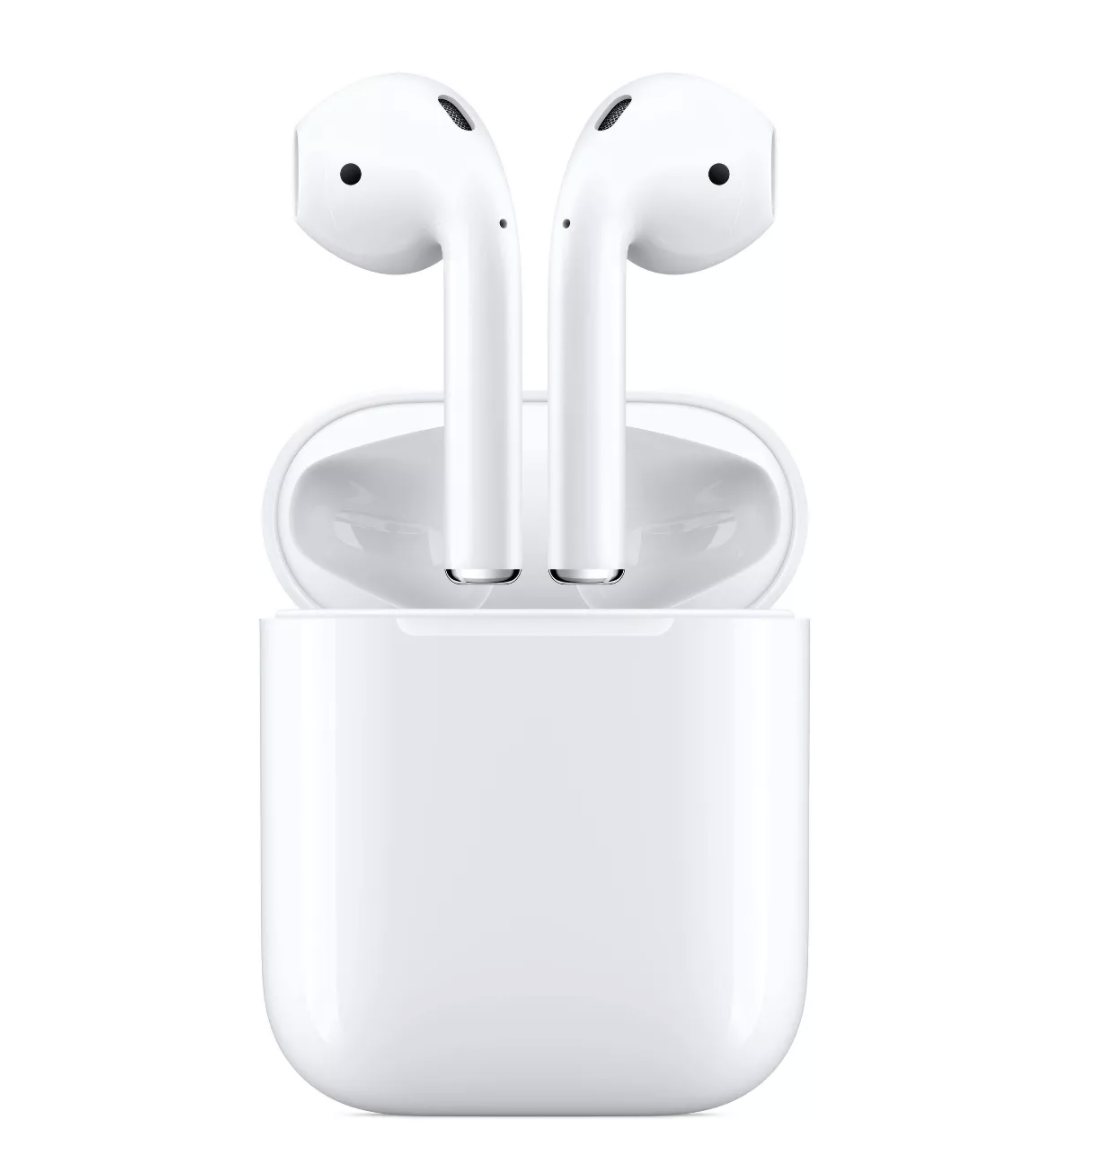 AirPods case opened with two AirPods removed